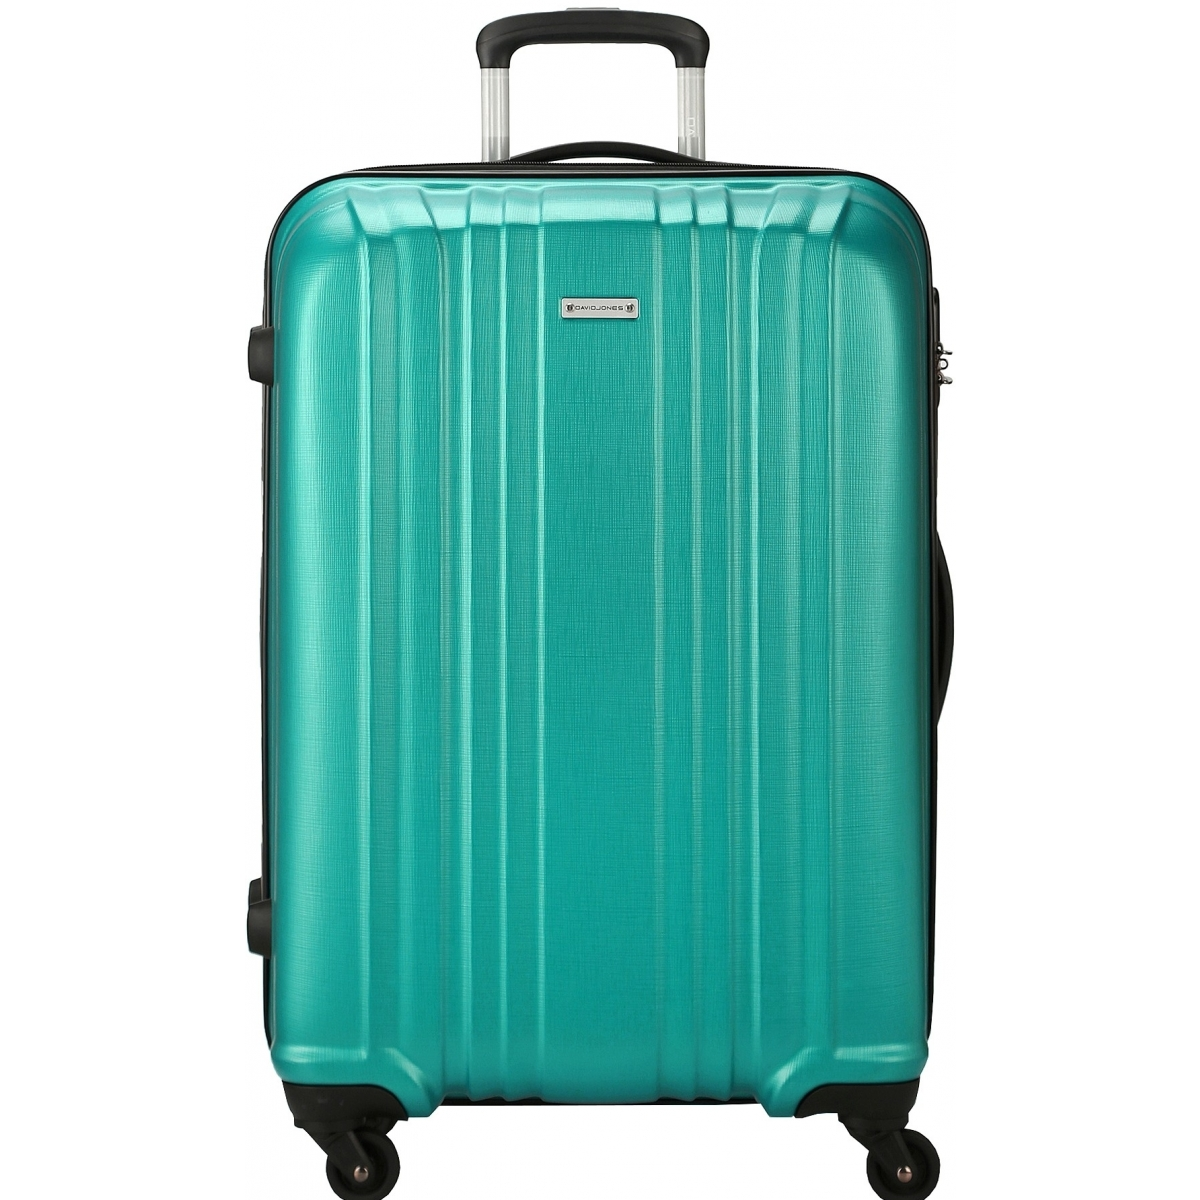 valise rigide david jones taille g 76cm ba10171g couleur principale turquoise promotion. Black Bedroom Furniture Sets. Home Design Ideas